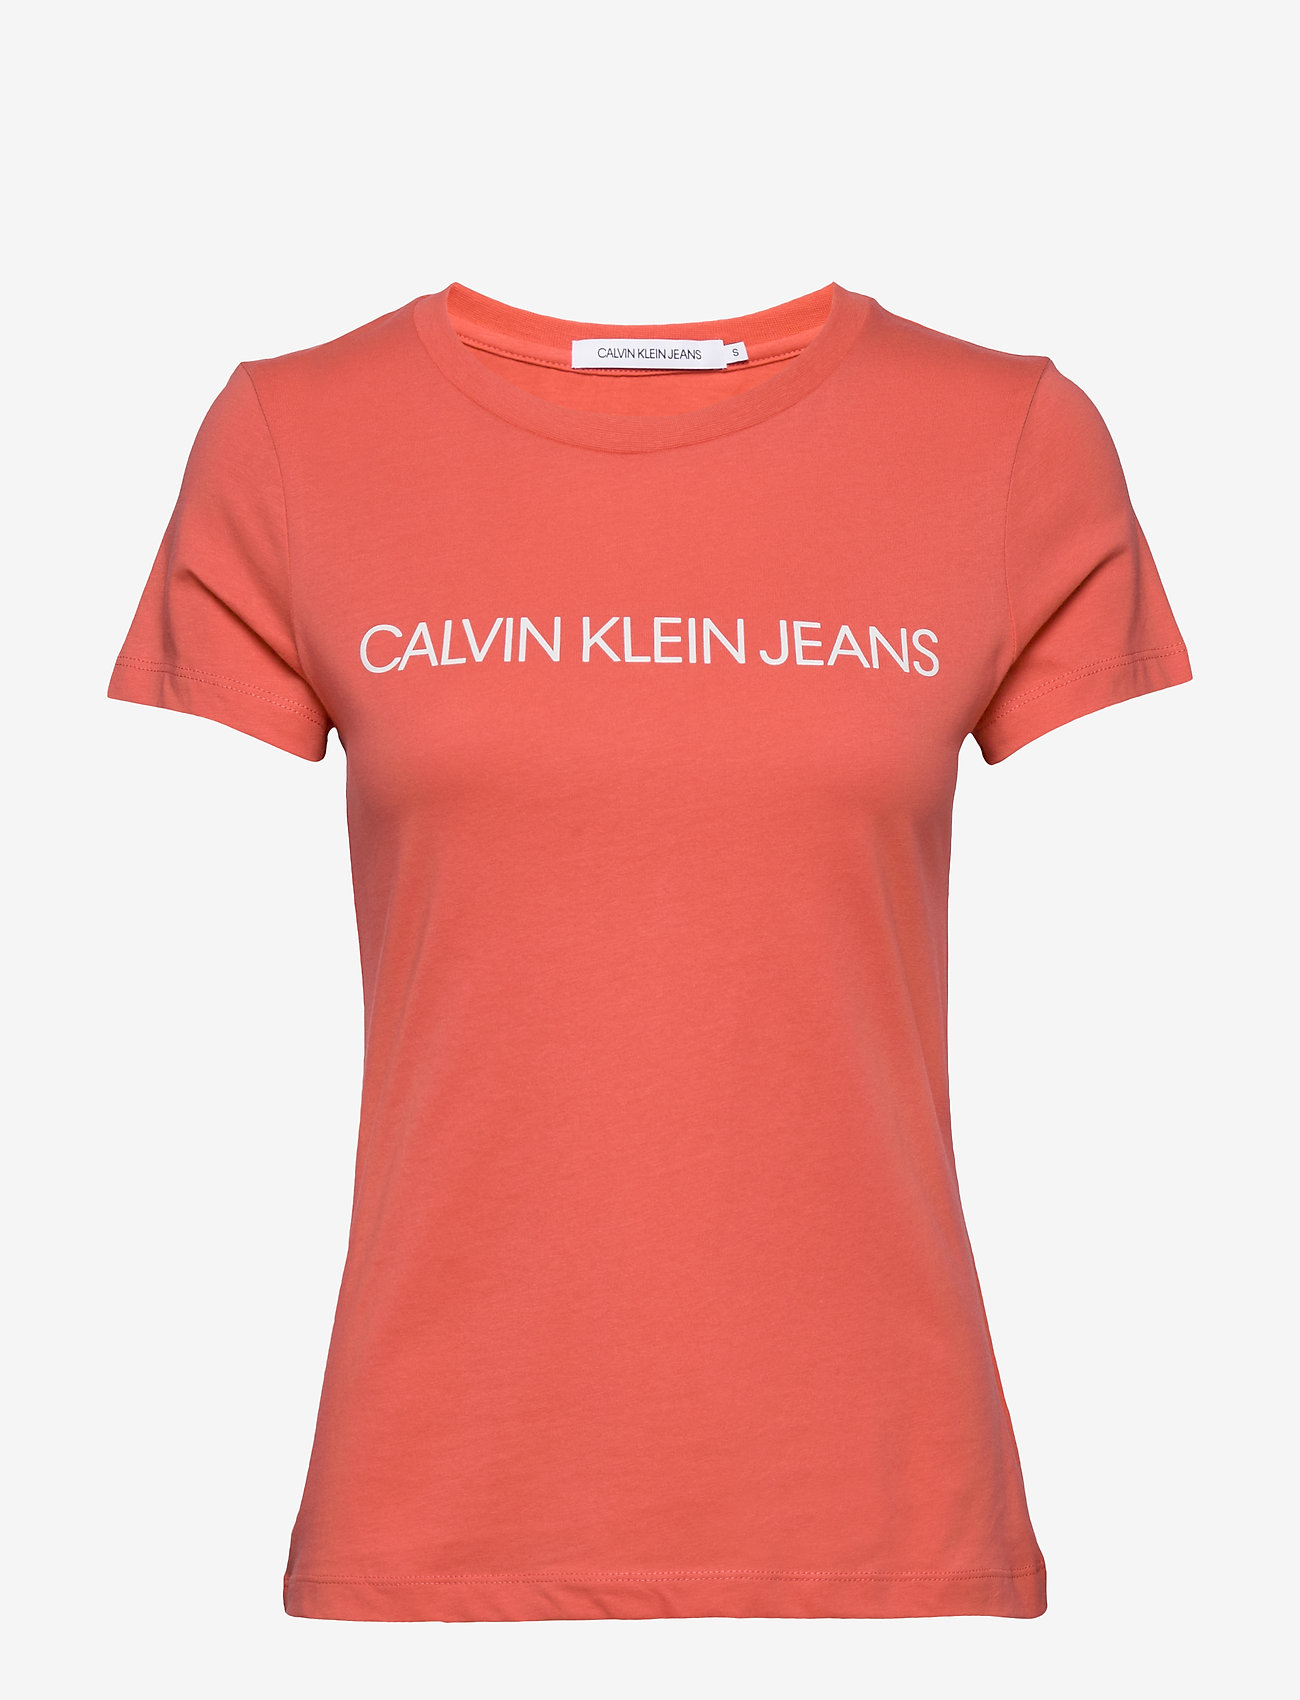 Calvin Klein Jeans - INSTITUTIONAL LOGO SLIM FIT TEE - t-shirts - island punch - 0